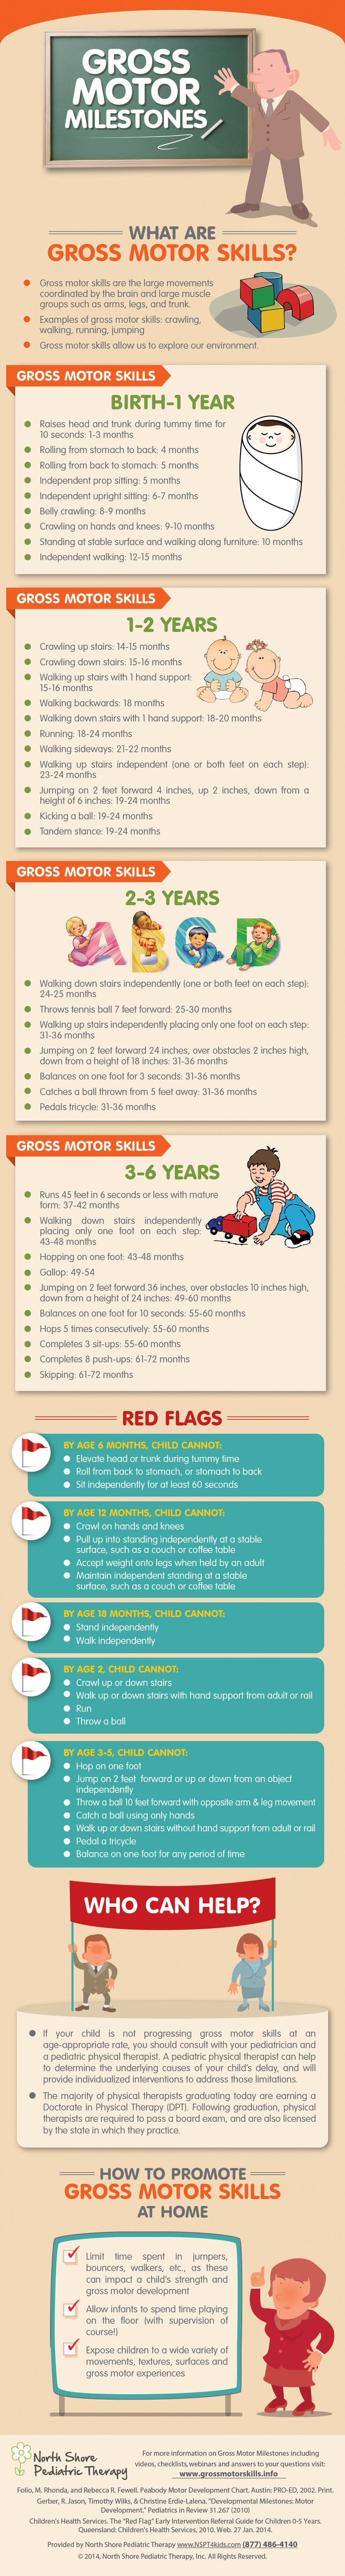 Gross Motor Milestones- Great infographic!